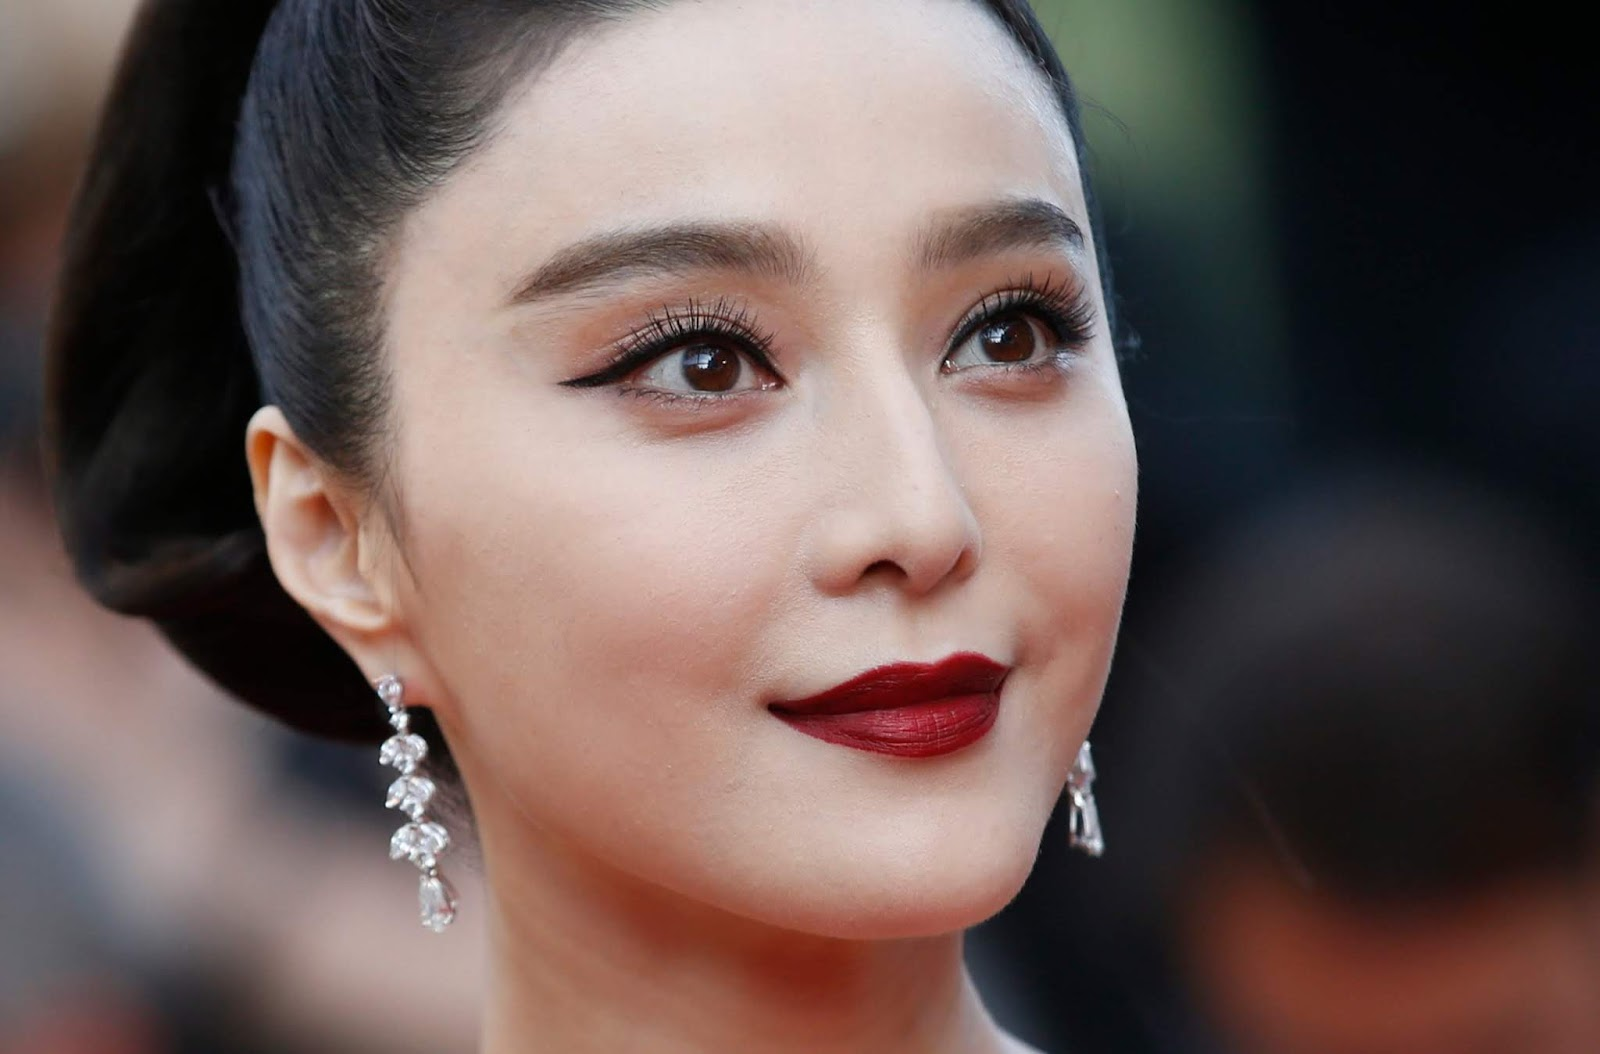 Fan Bingbing: Fears Missing X-Men Star Arrested By Chinese Authorities